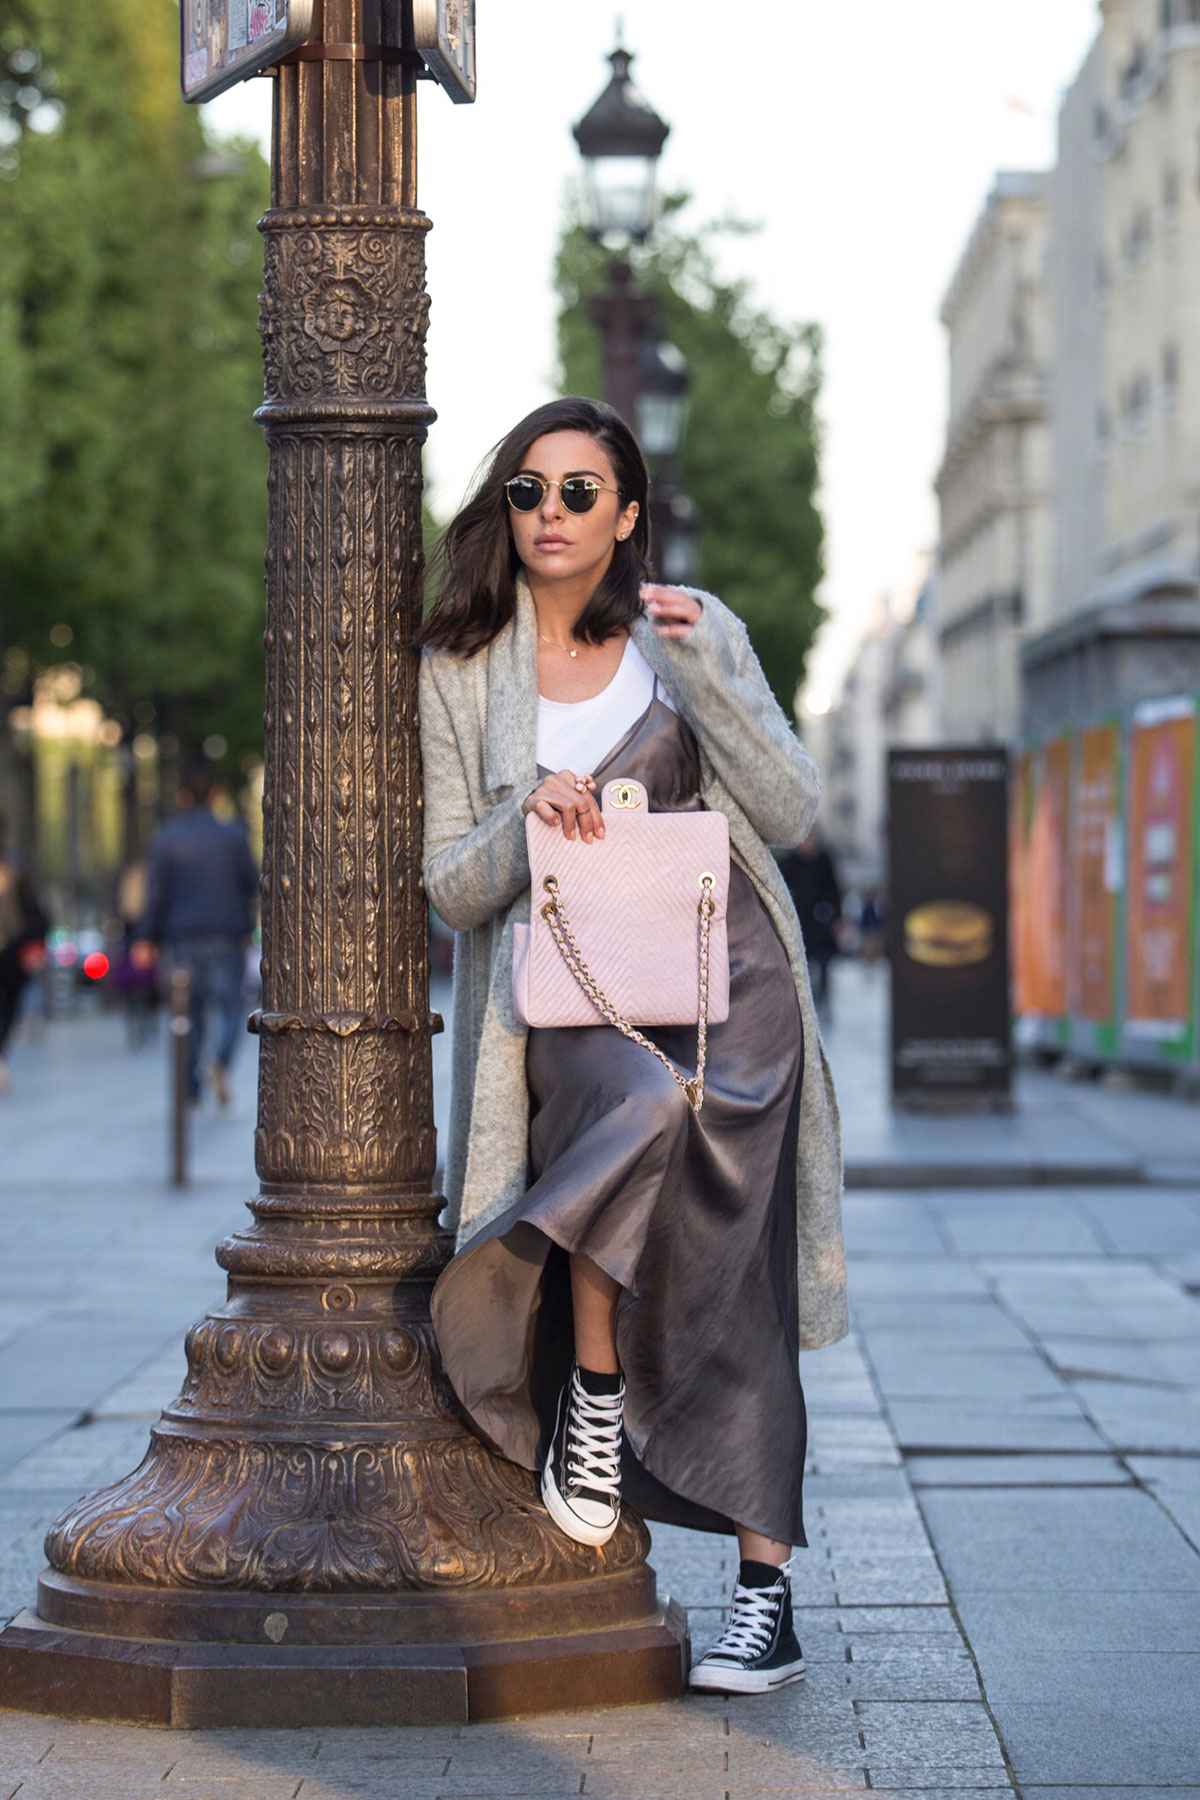 pink Chanel bag and Converse all star sneakers as seen on Stella Asteria - Fashion & Lifestyle Blogger